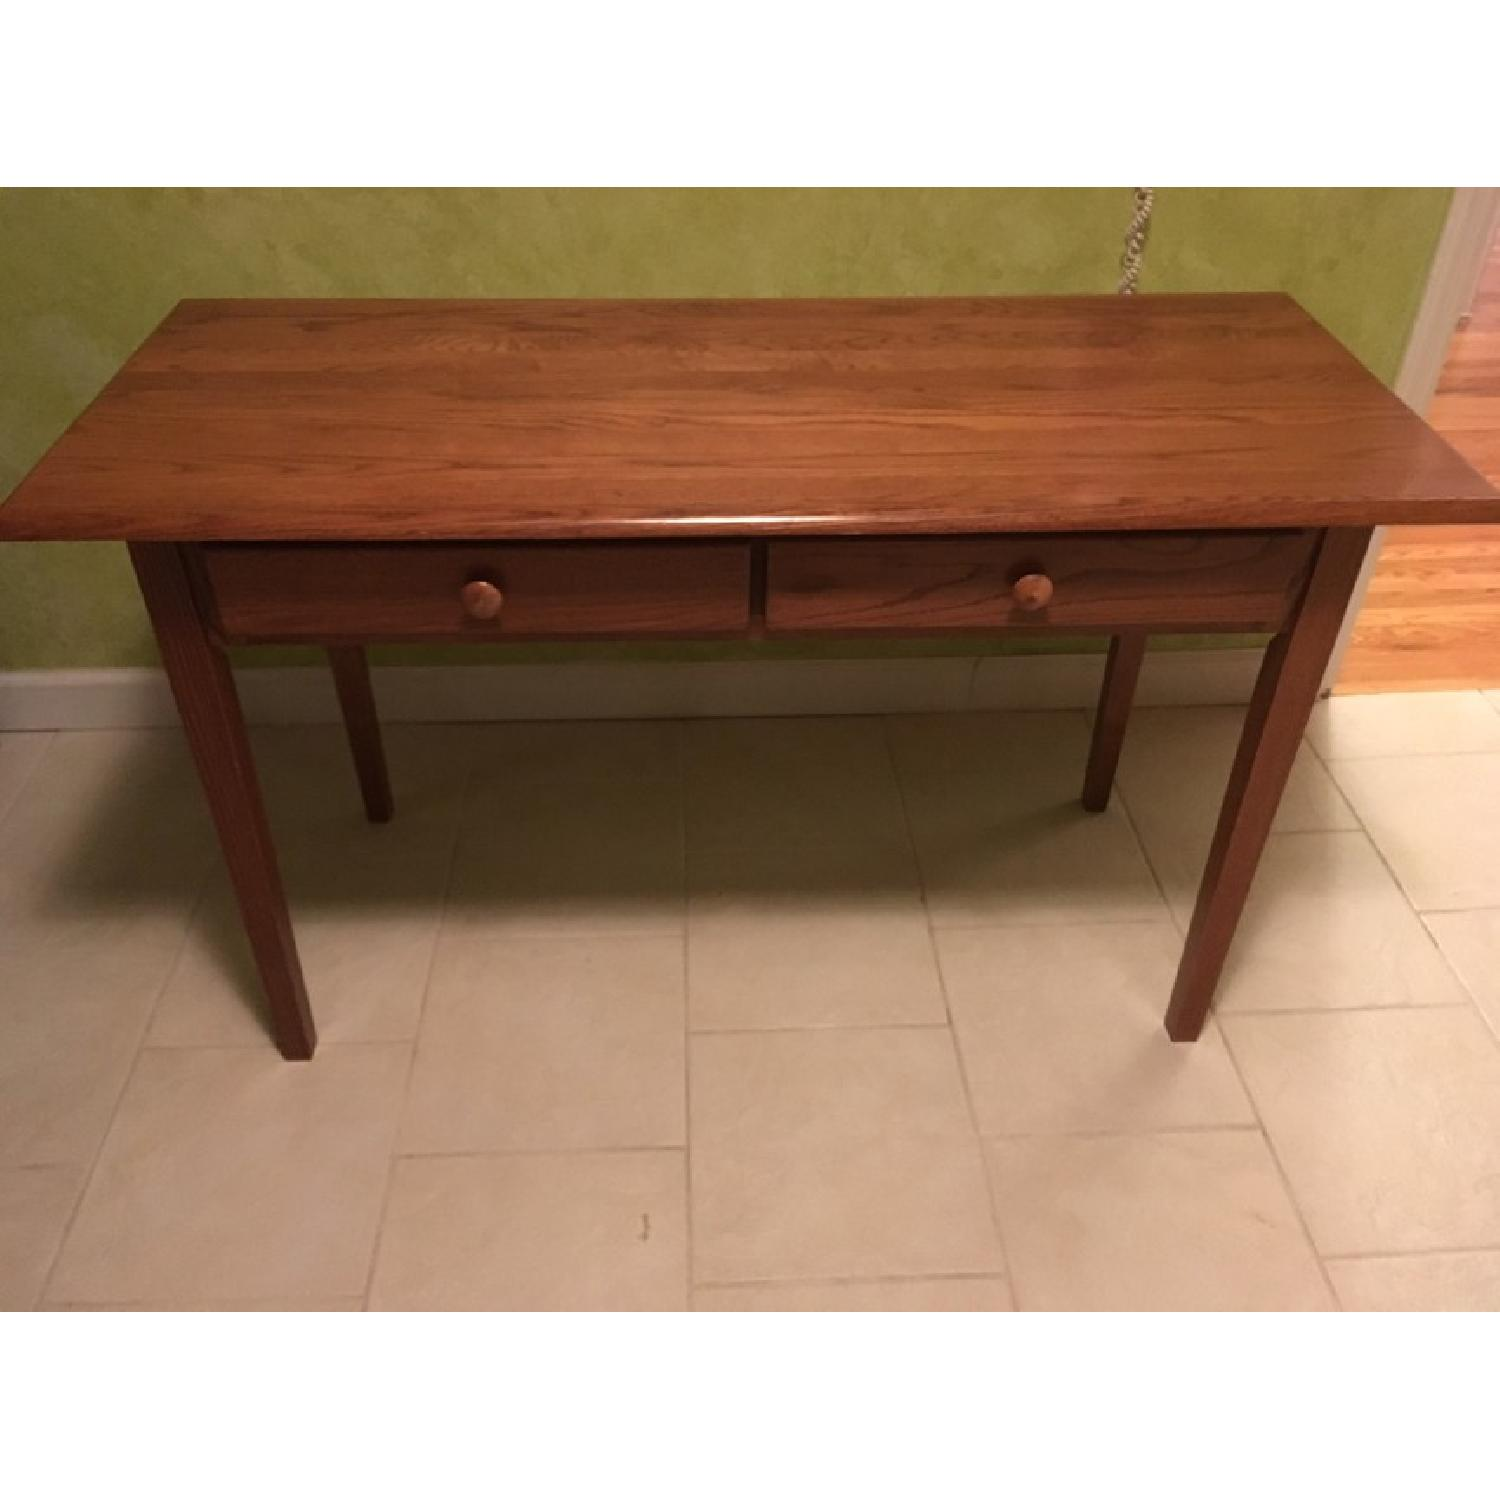 Wood Desk w/ 2 Drawers - image-1